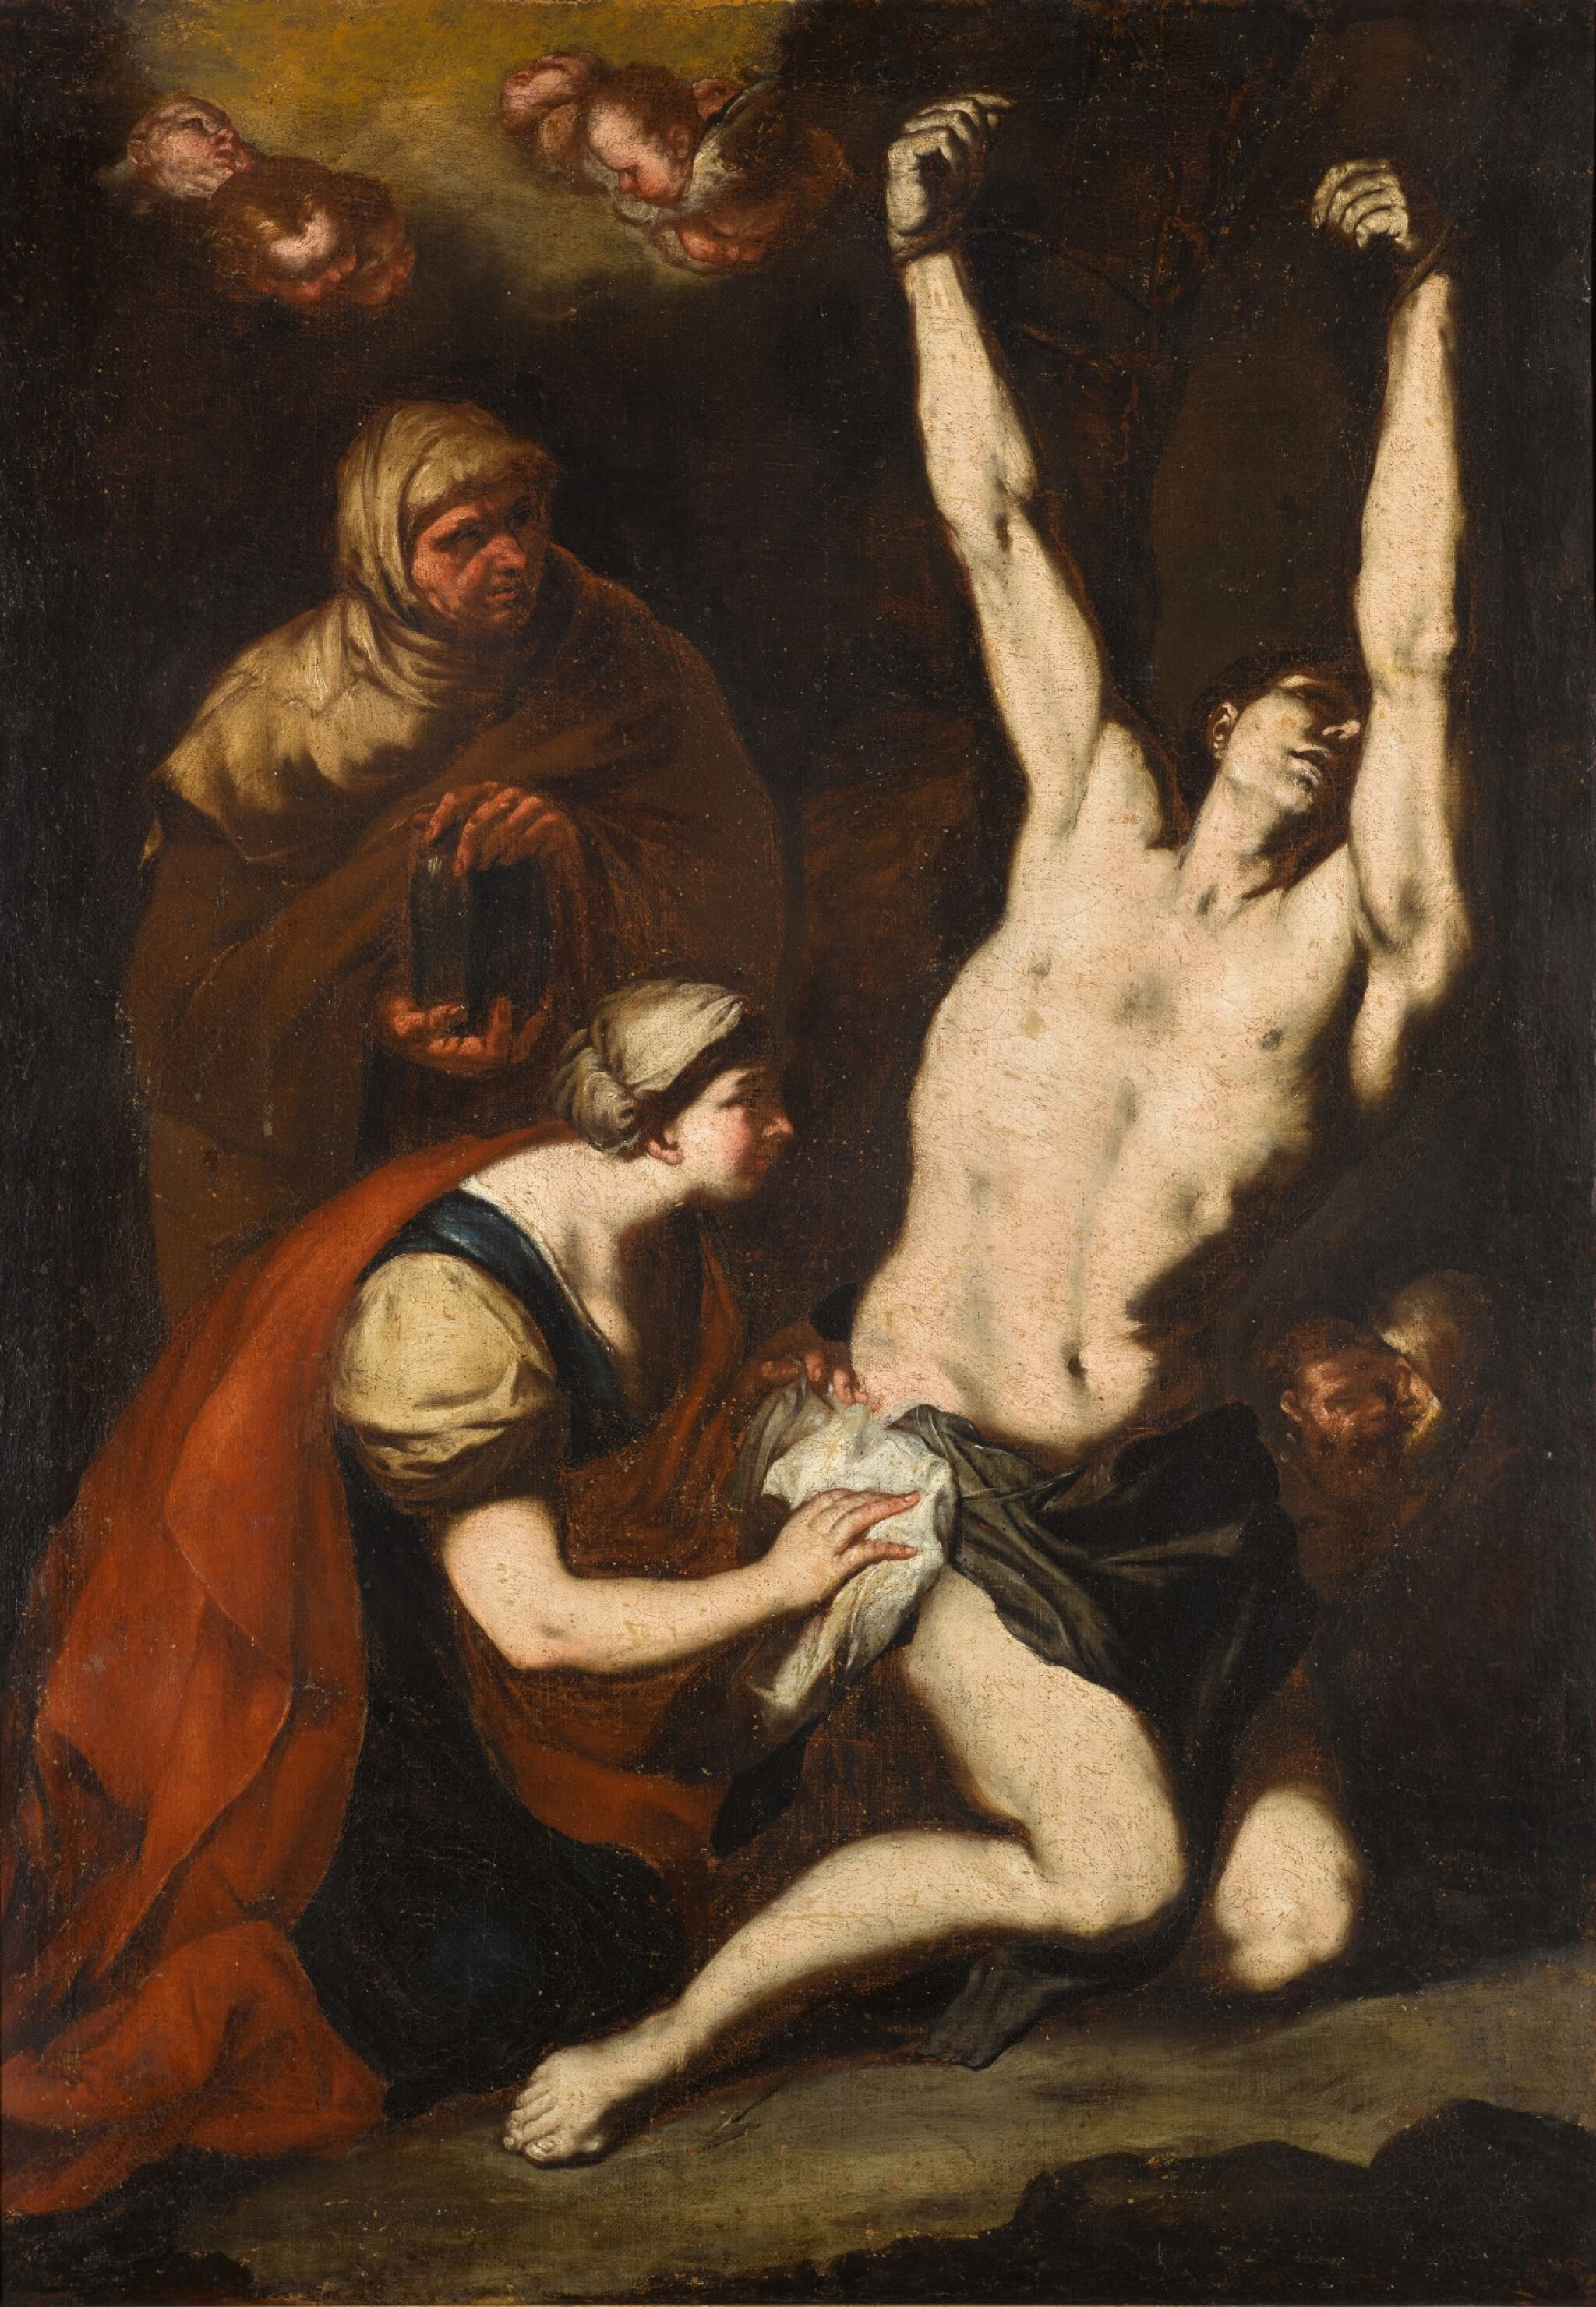 View 1 of Lot 120. Saint Sebastian Tended by the Pious Women.